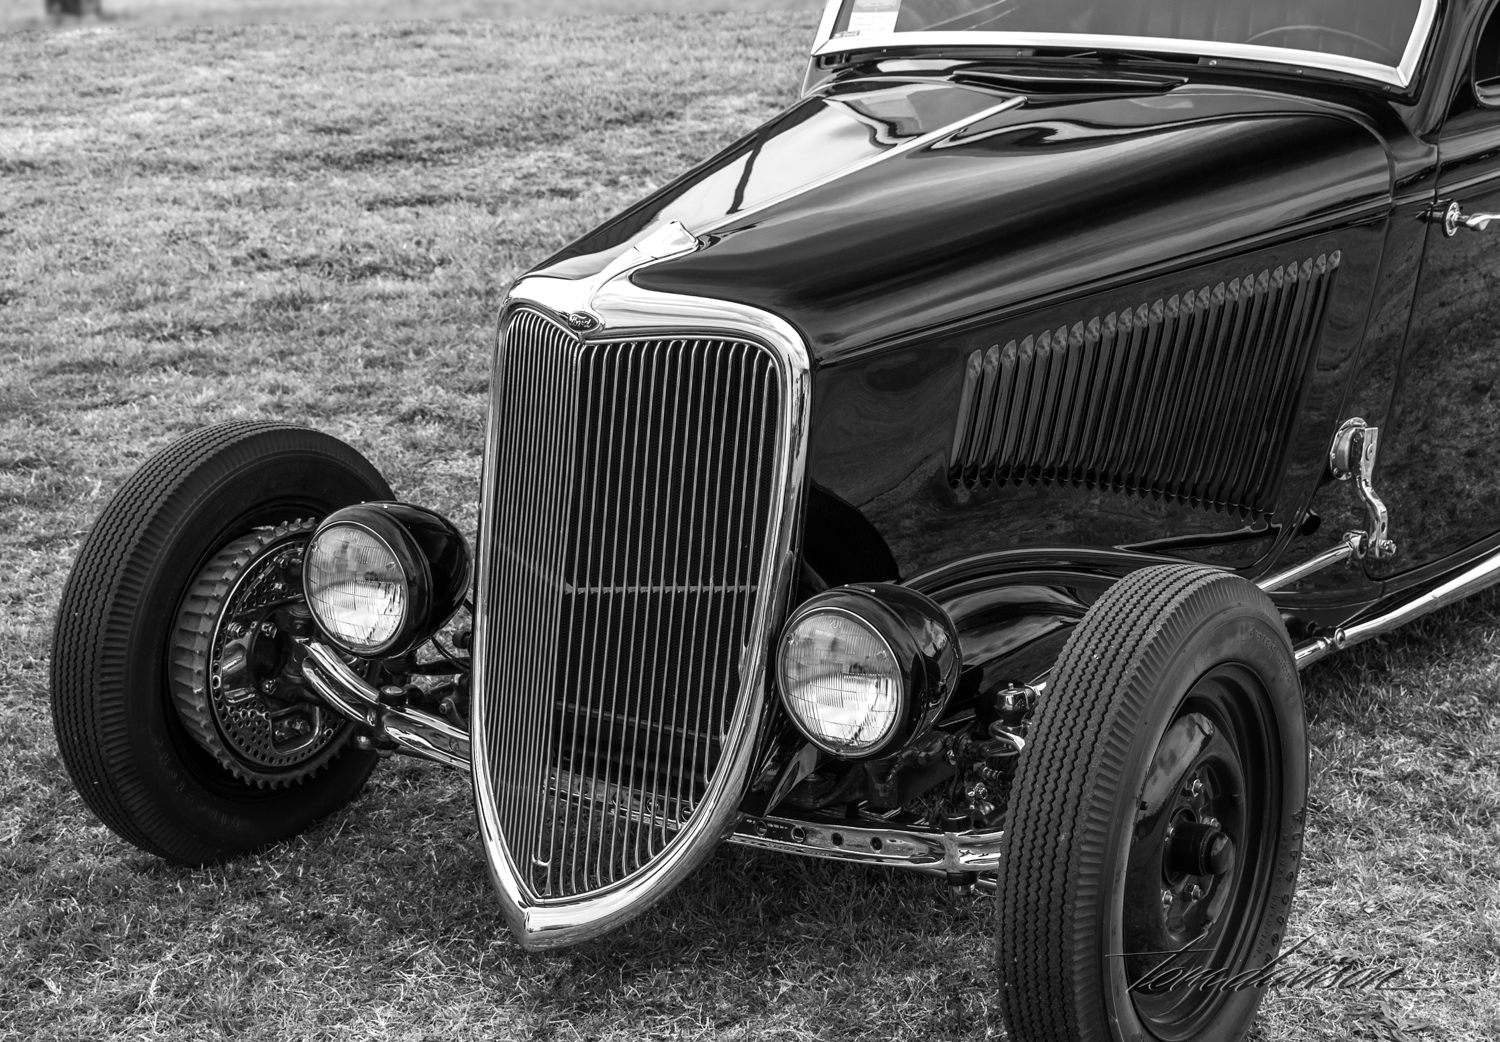 Detail of 1934 Ford